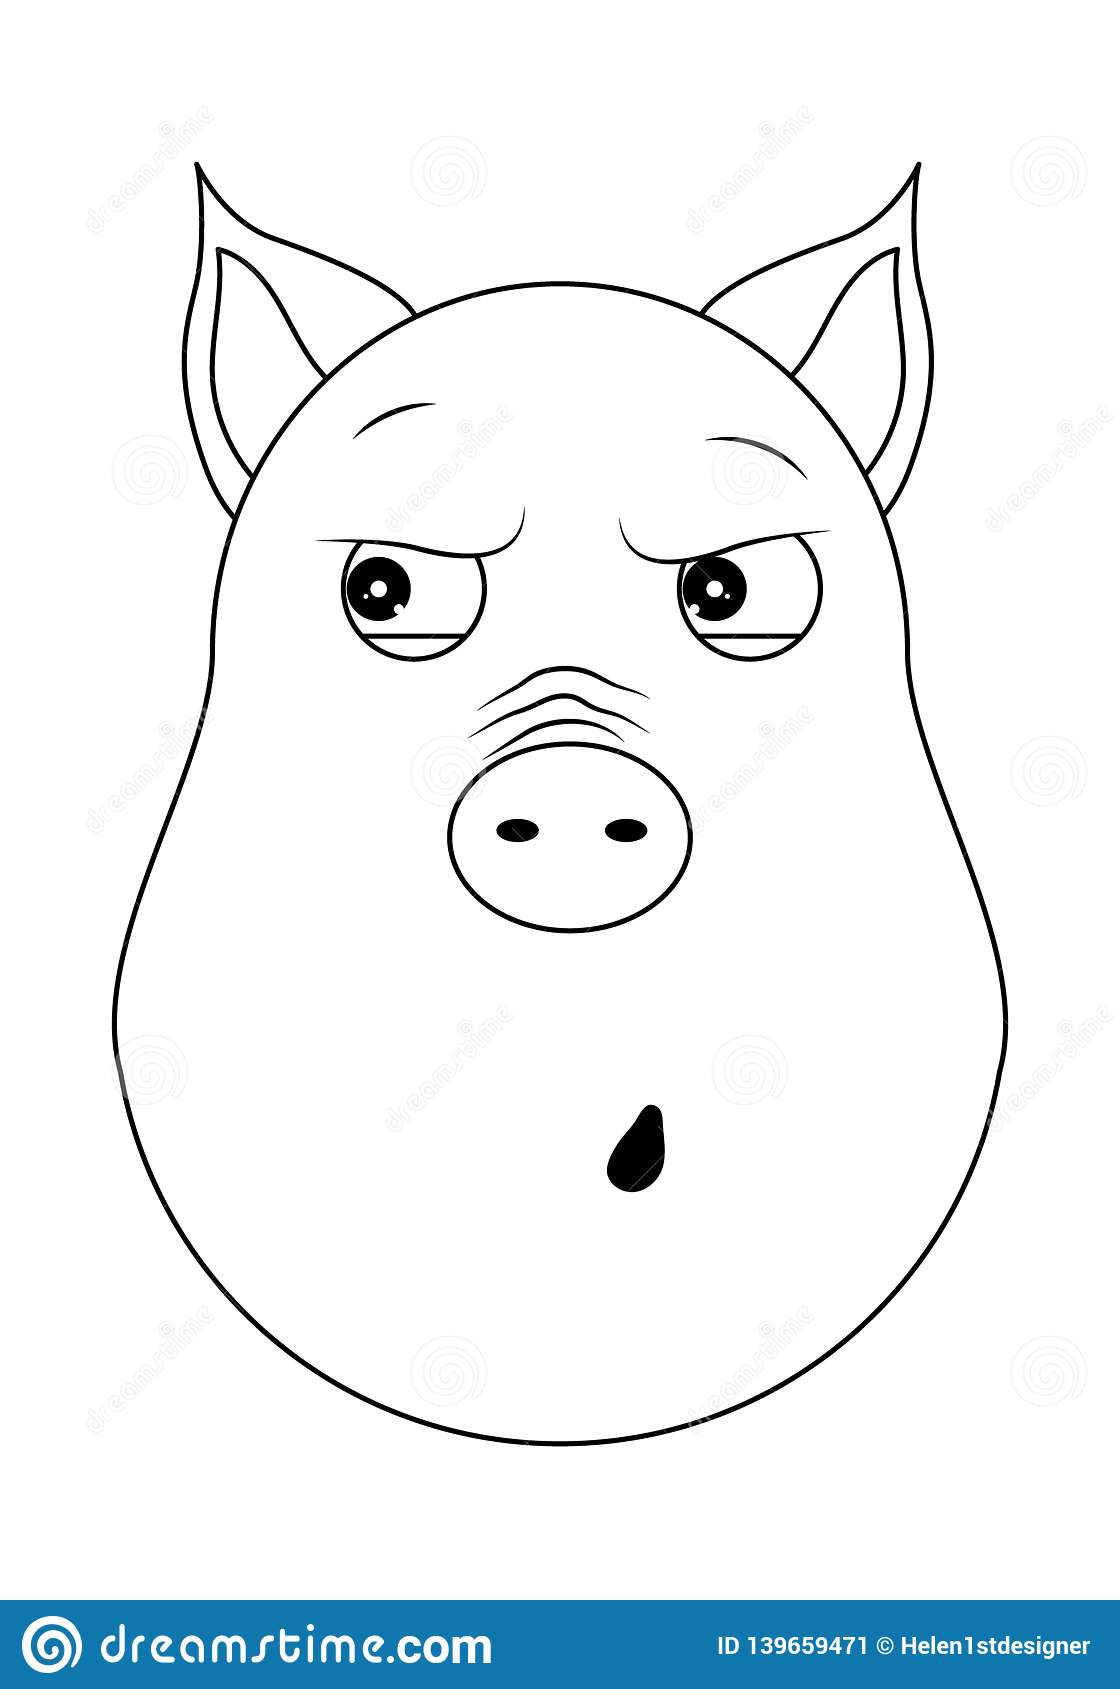 Head of paranoid pig in outline style. Kawaii animal.